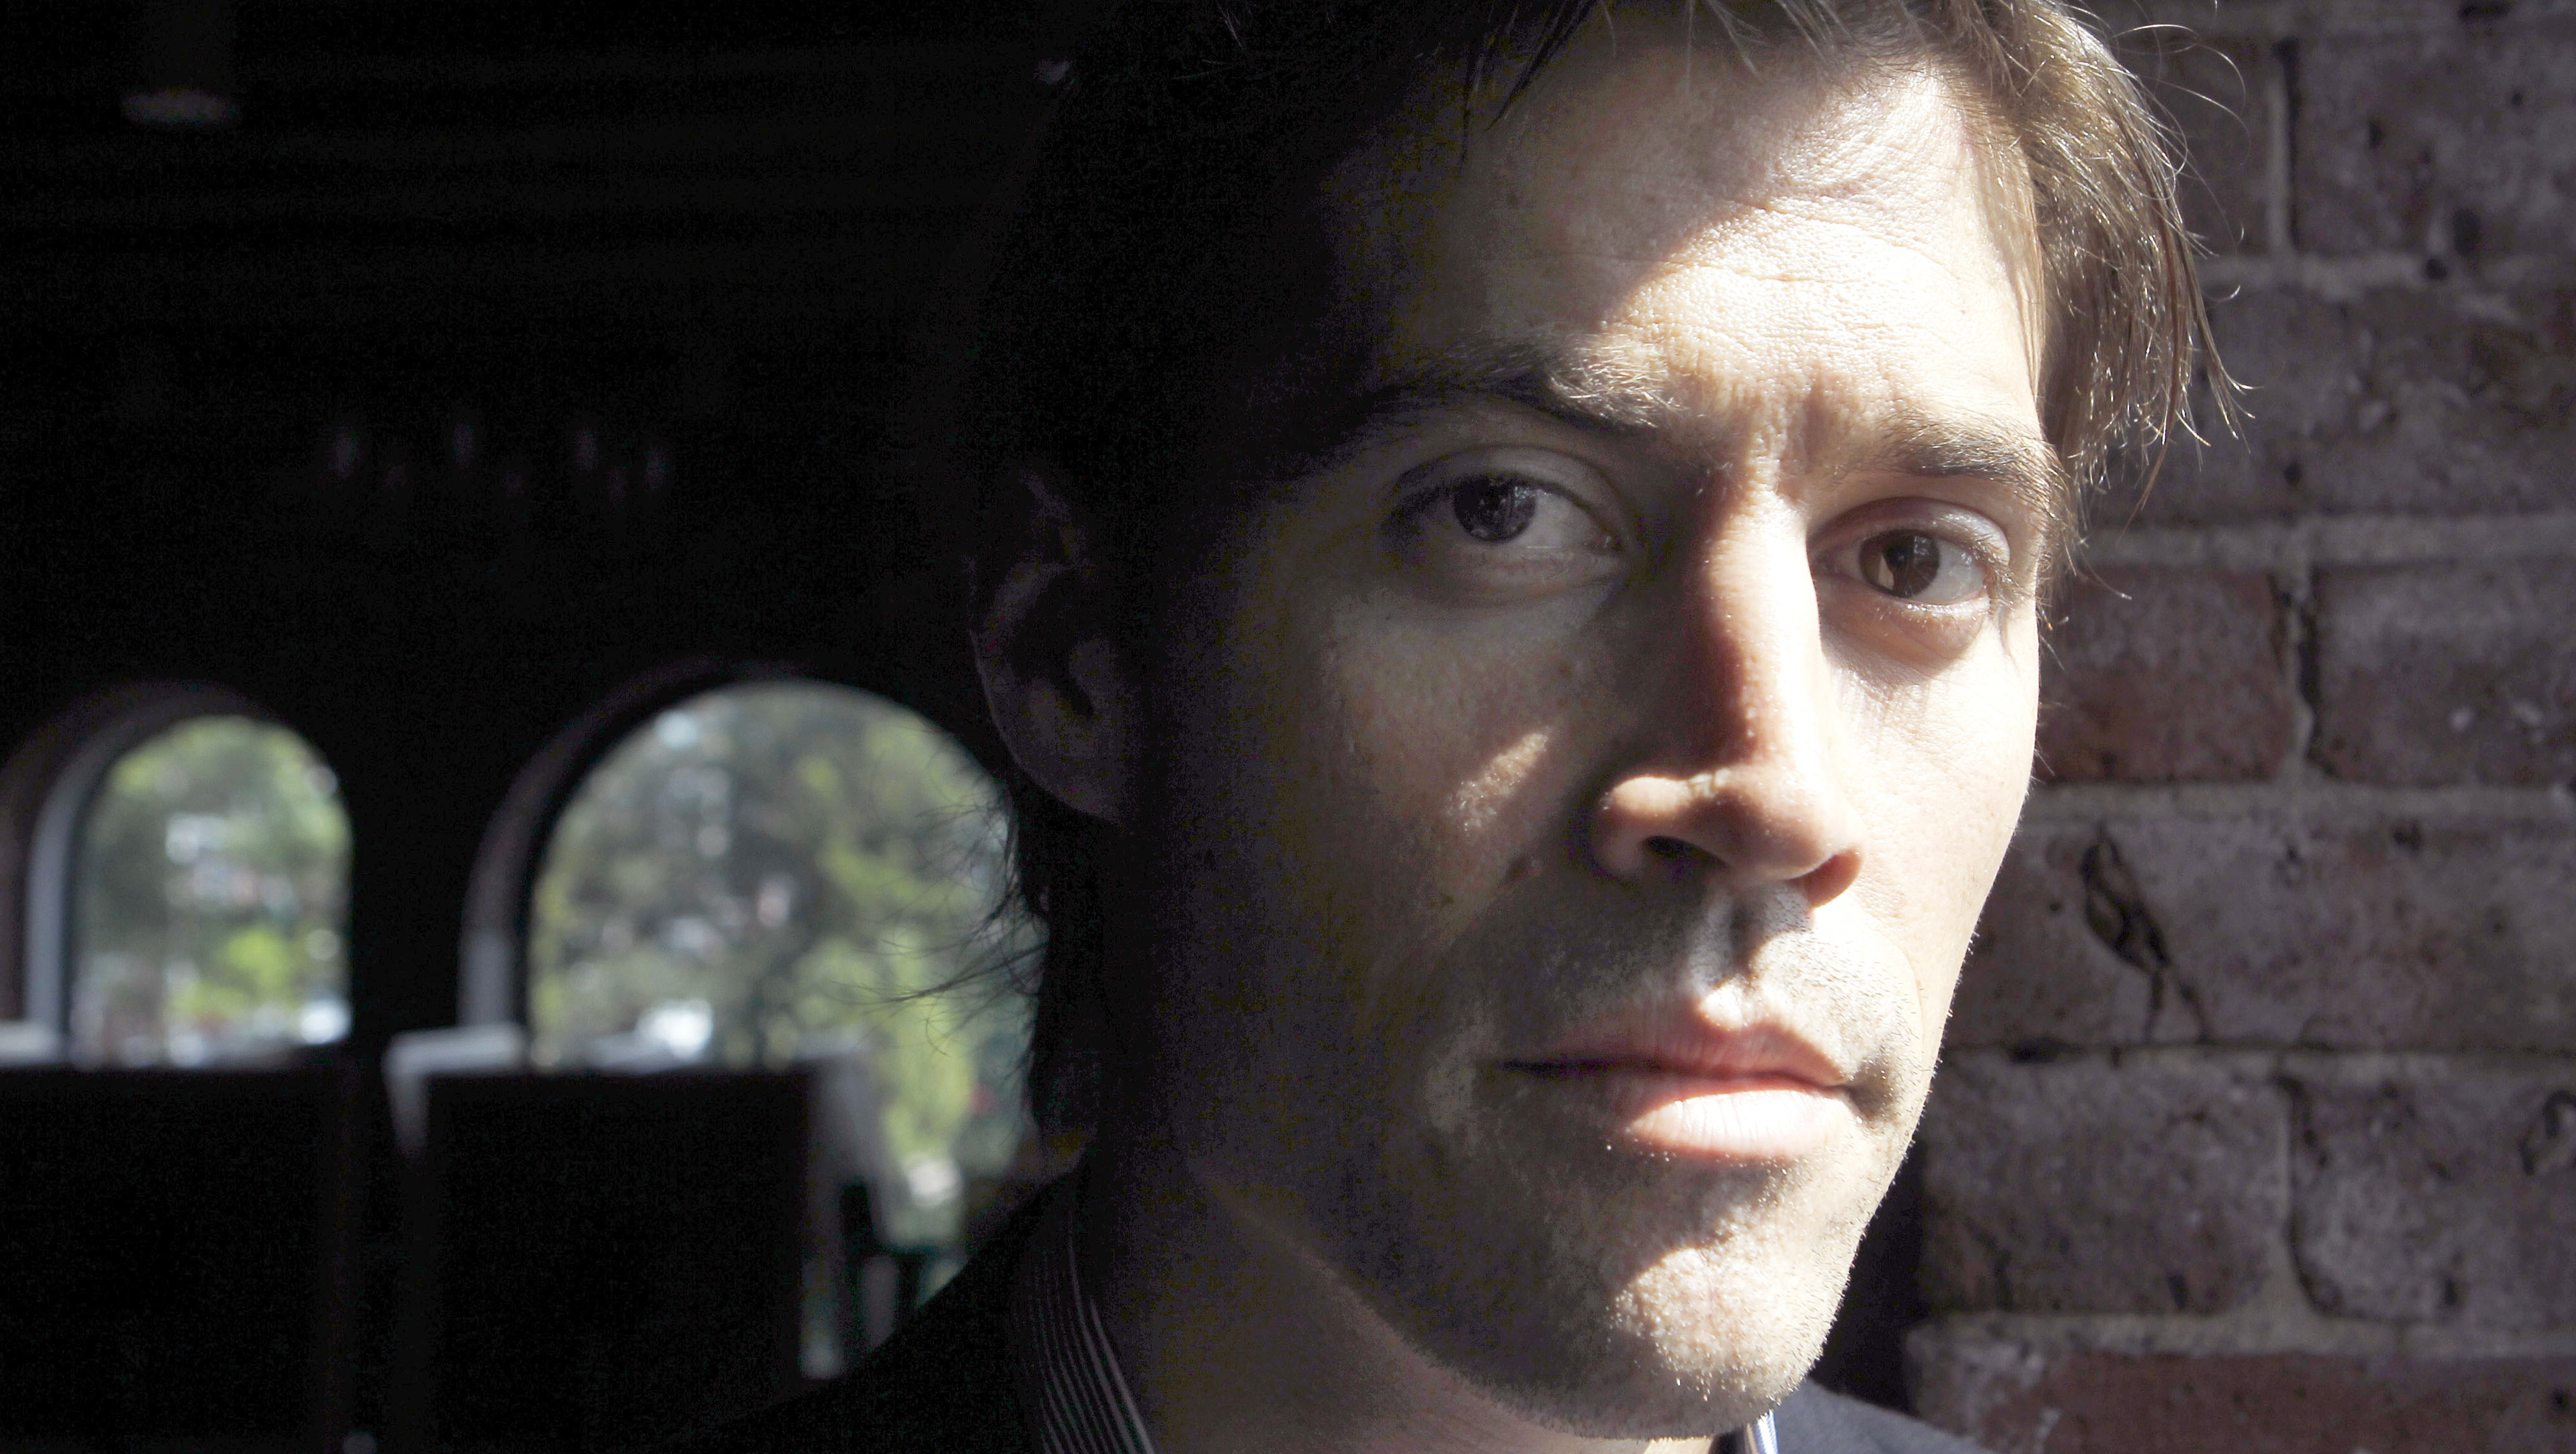 james foley us journalist apparently beheaded by isis